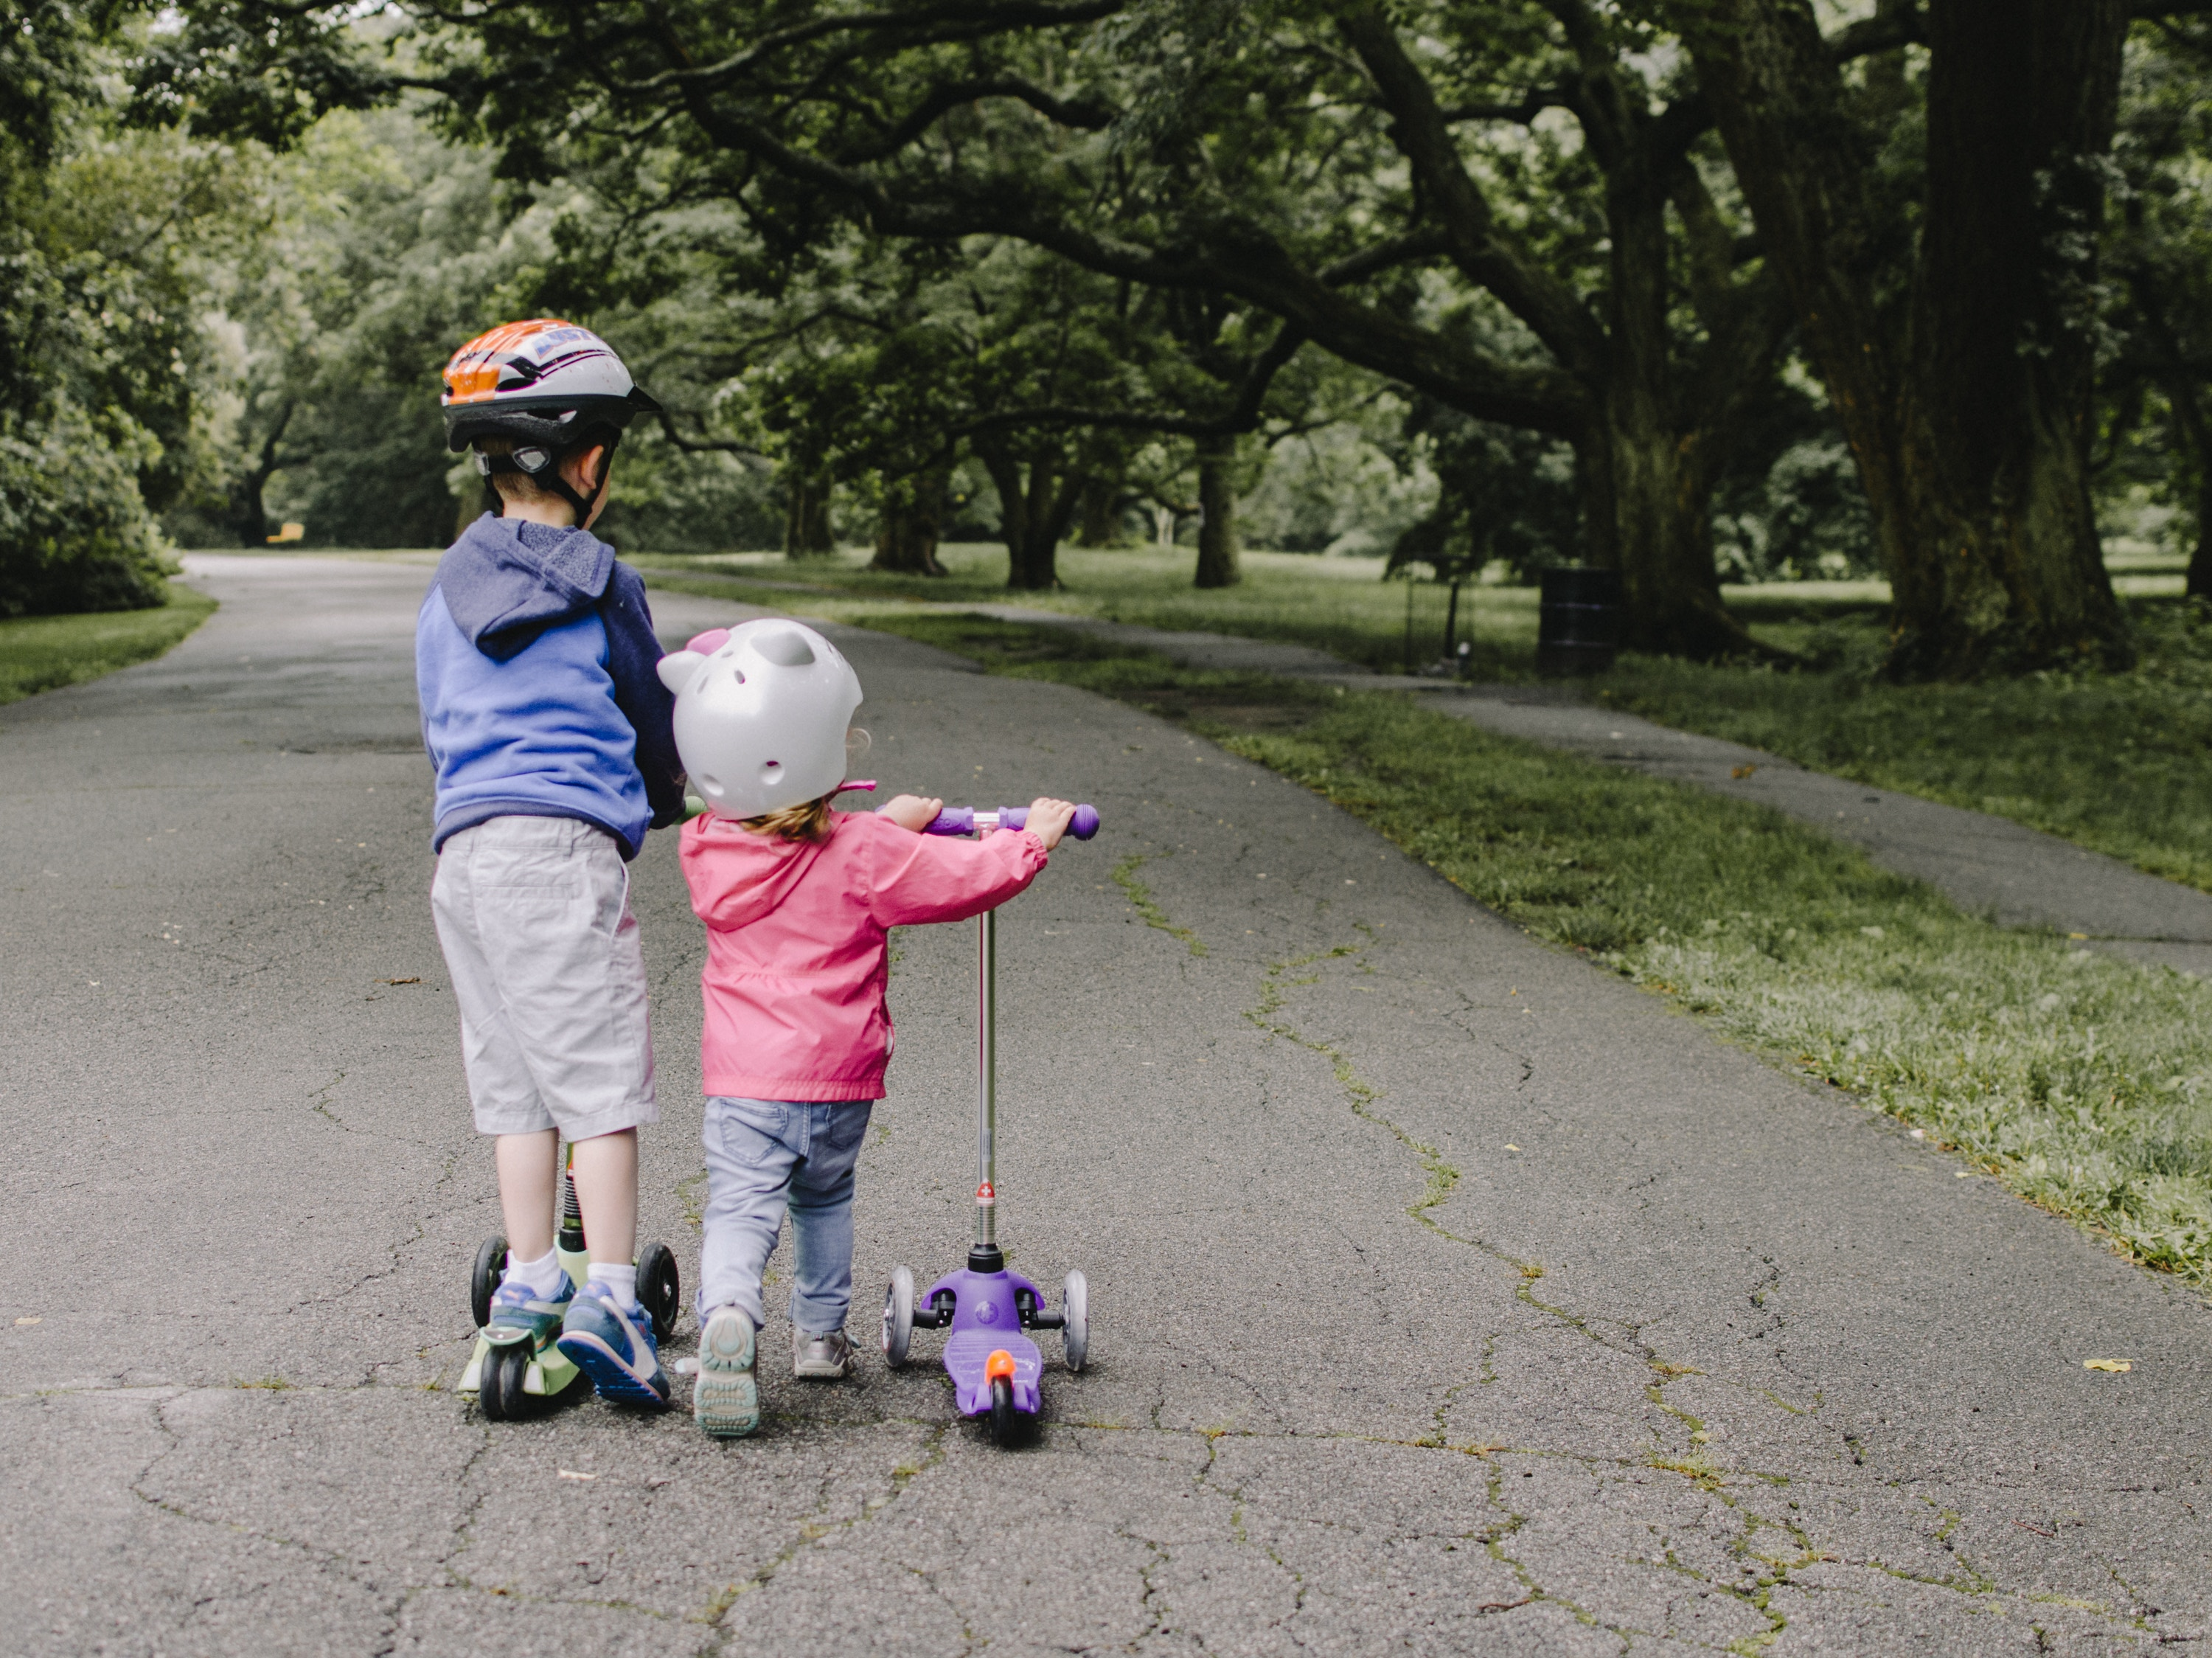 Kids on Scooters